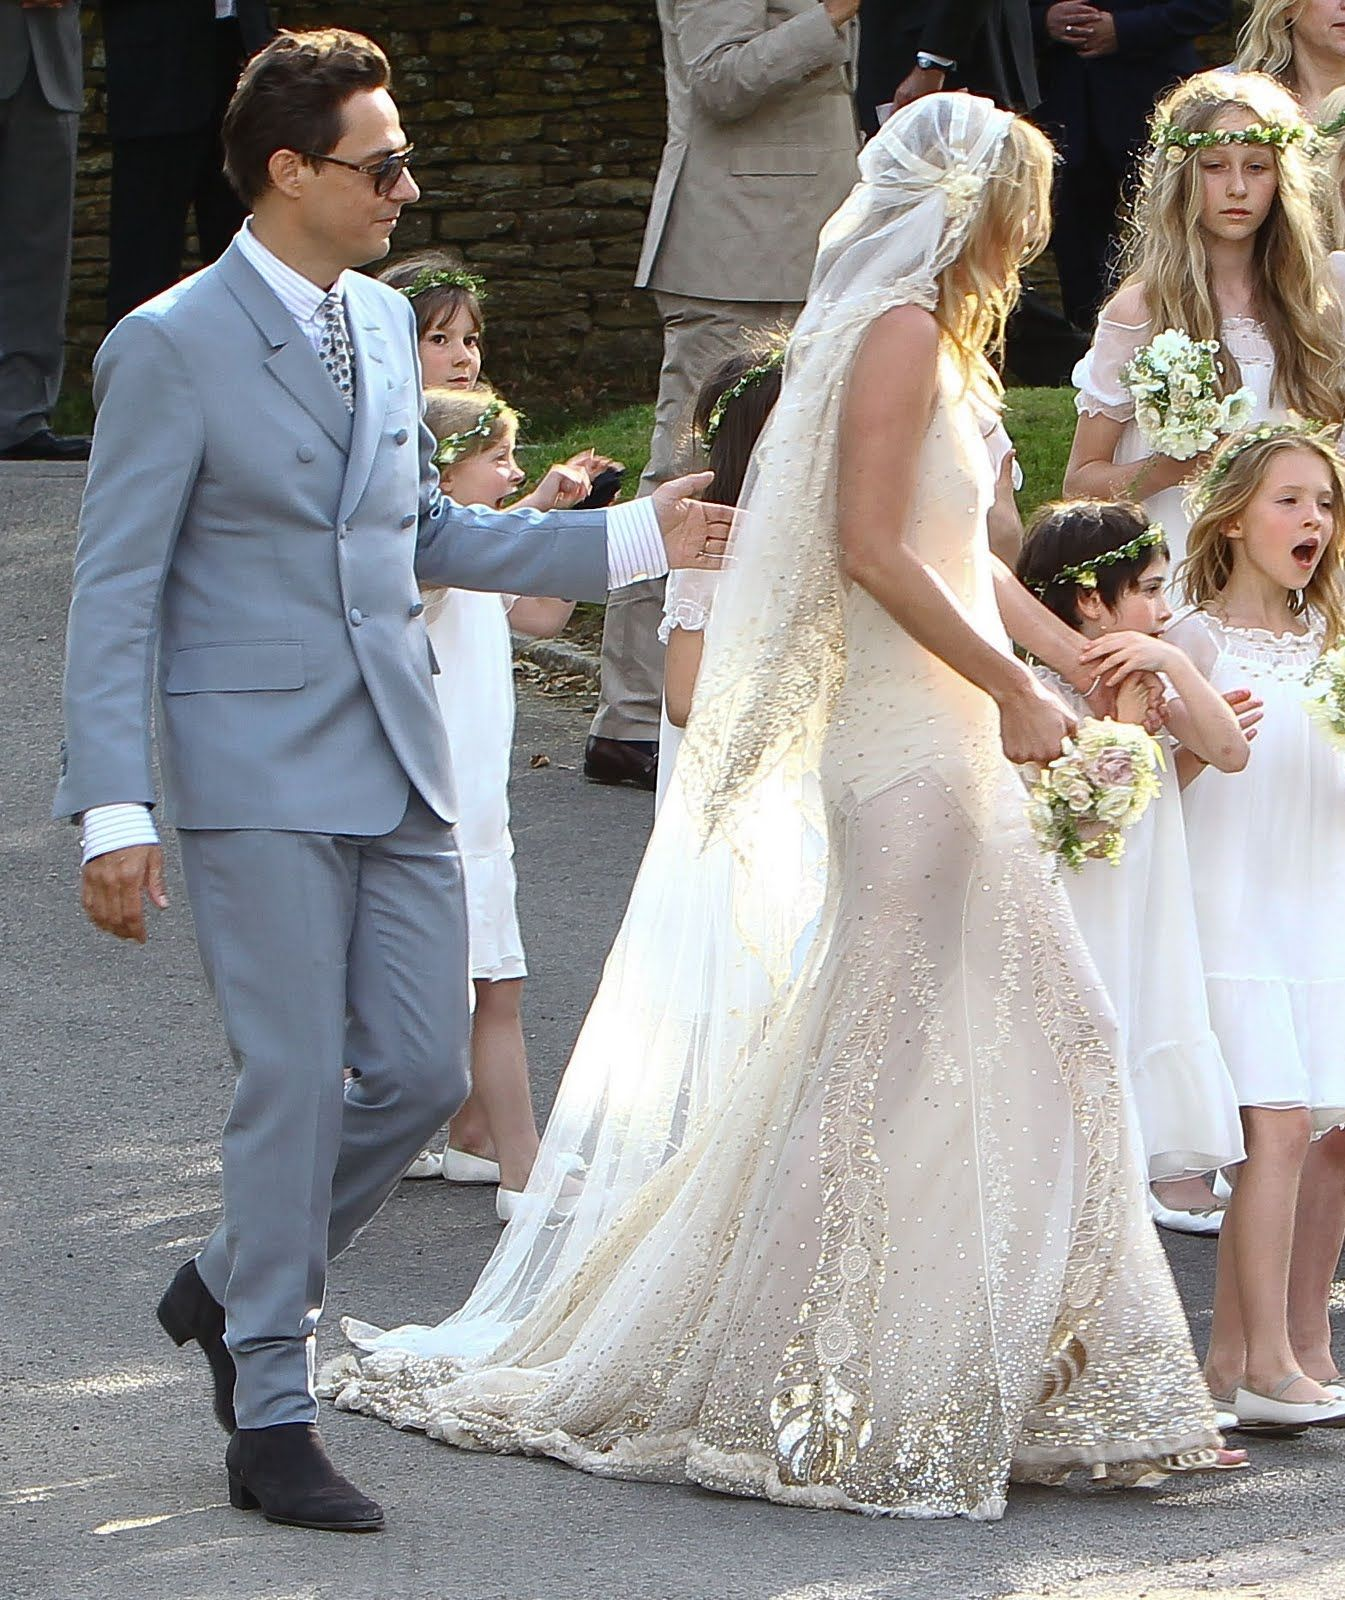 Kate moss wedding dress  This years best wedding dress in my opinion goes to a different